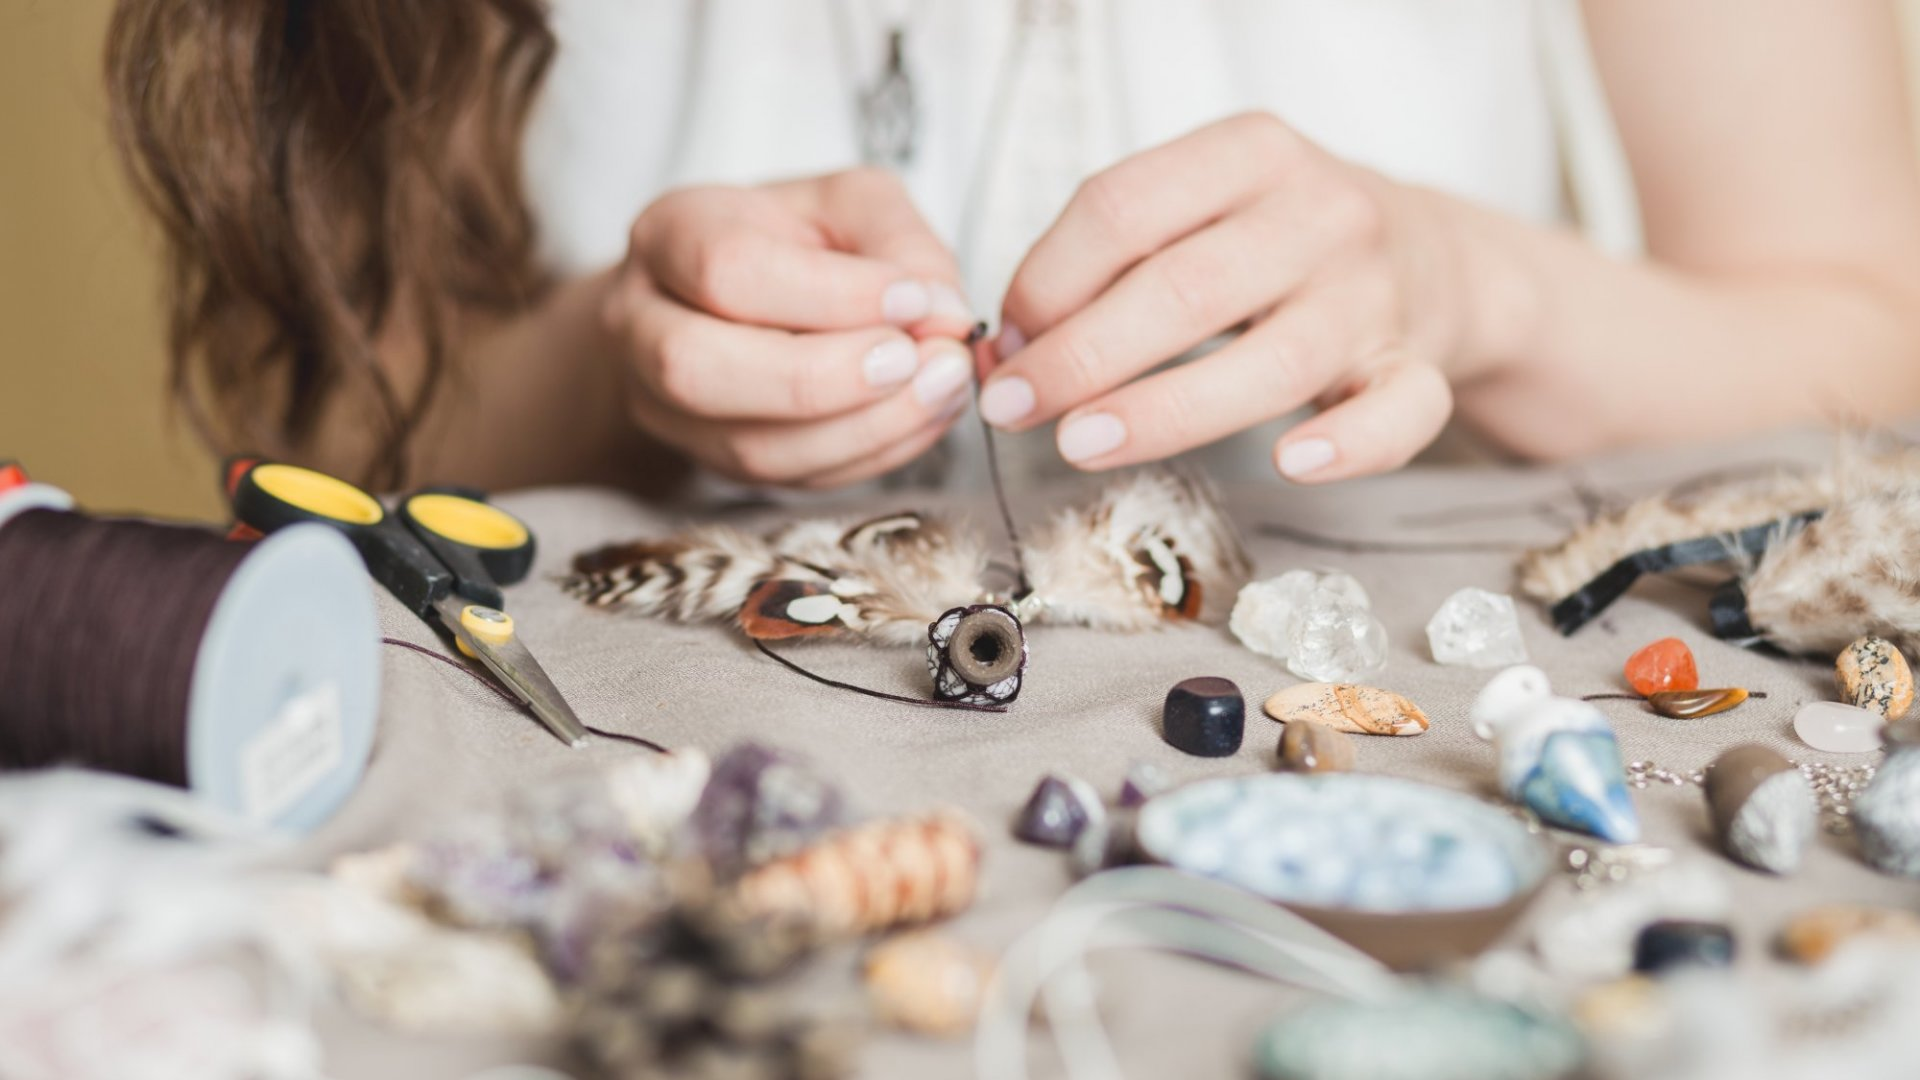 4 Key Indicators That It's Time to Turn Your Hobby Into a Business